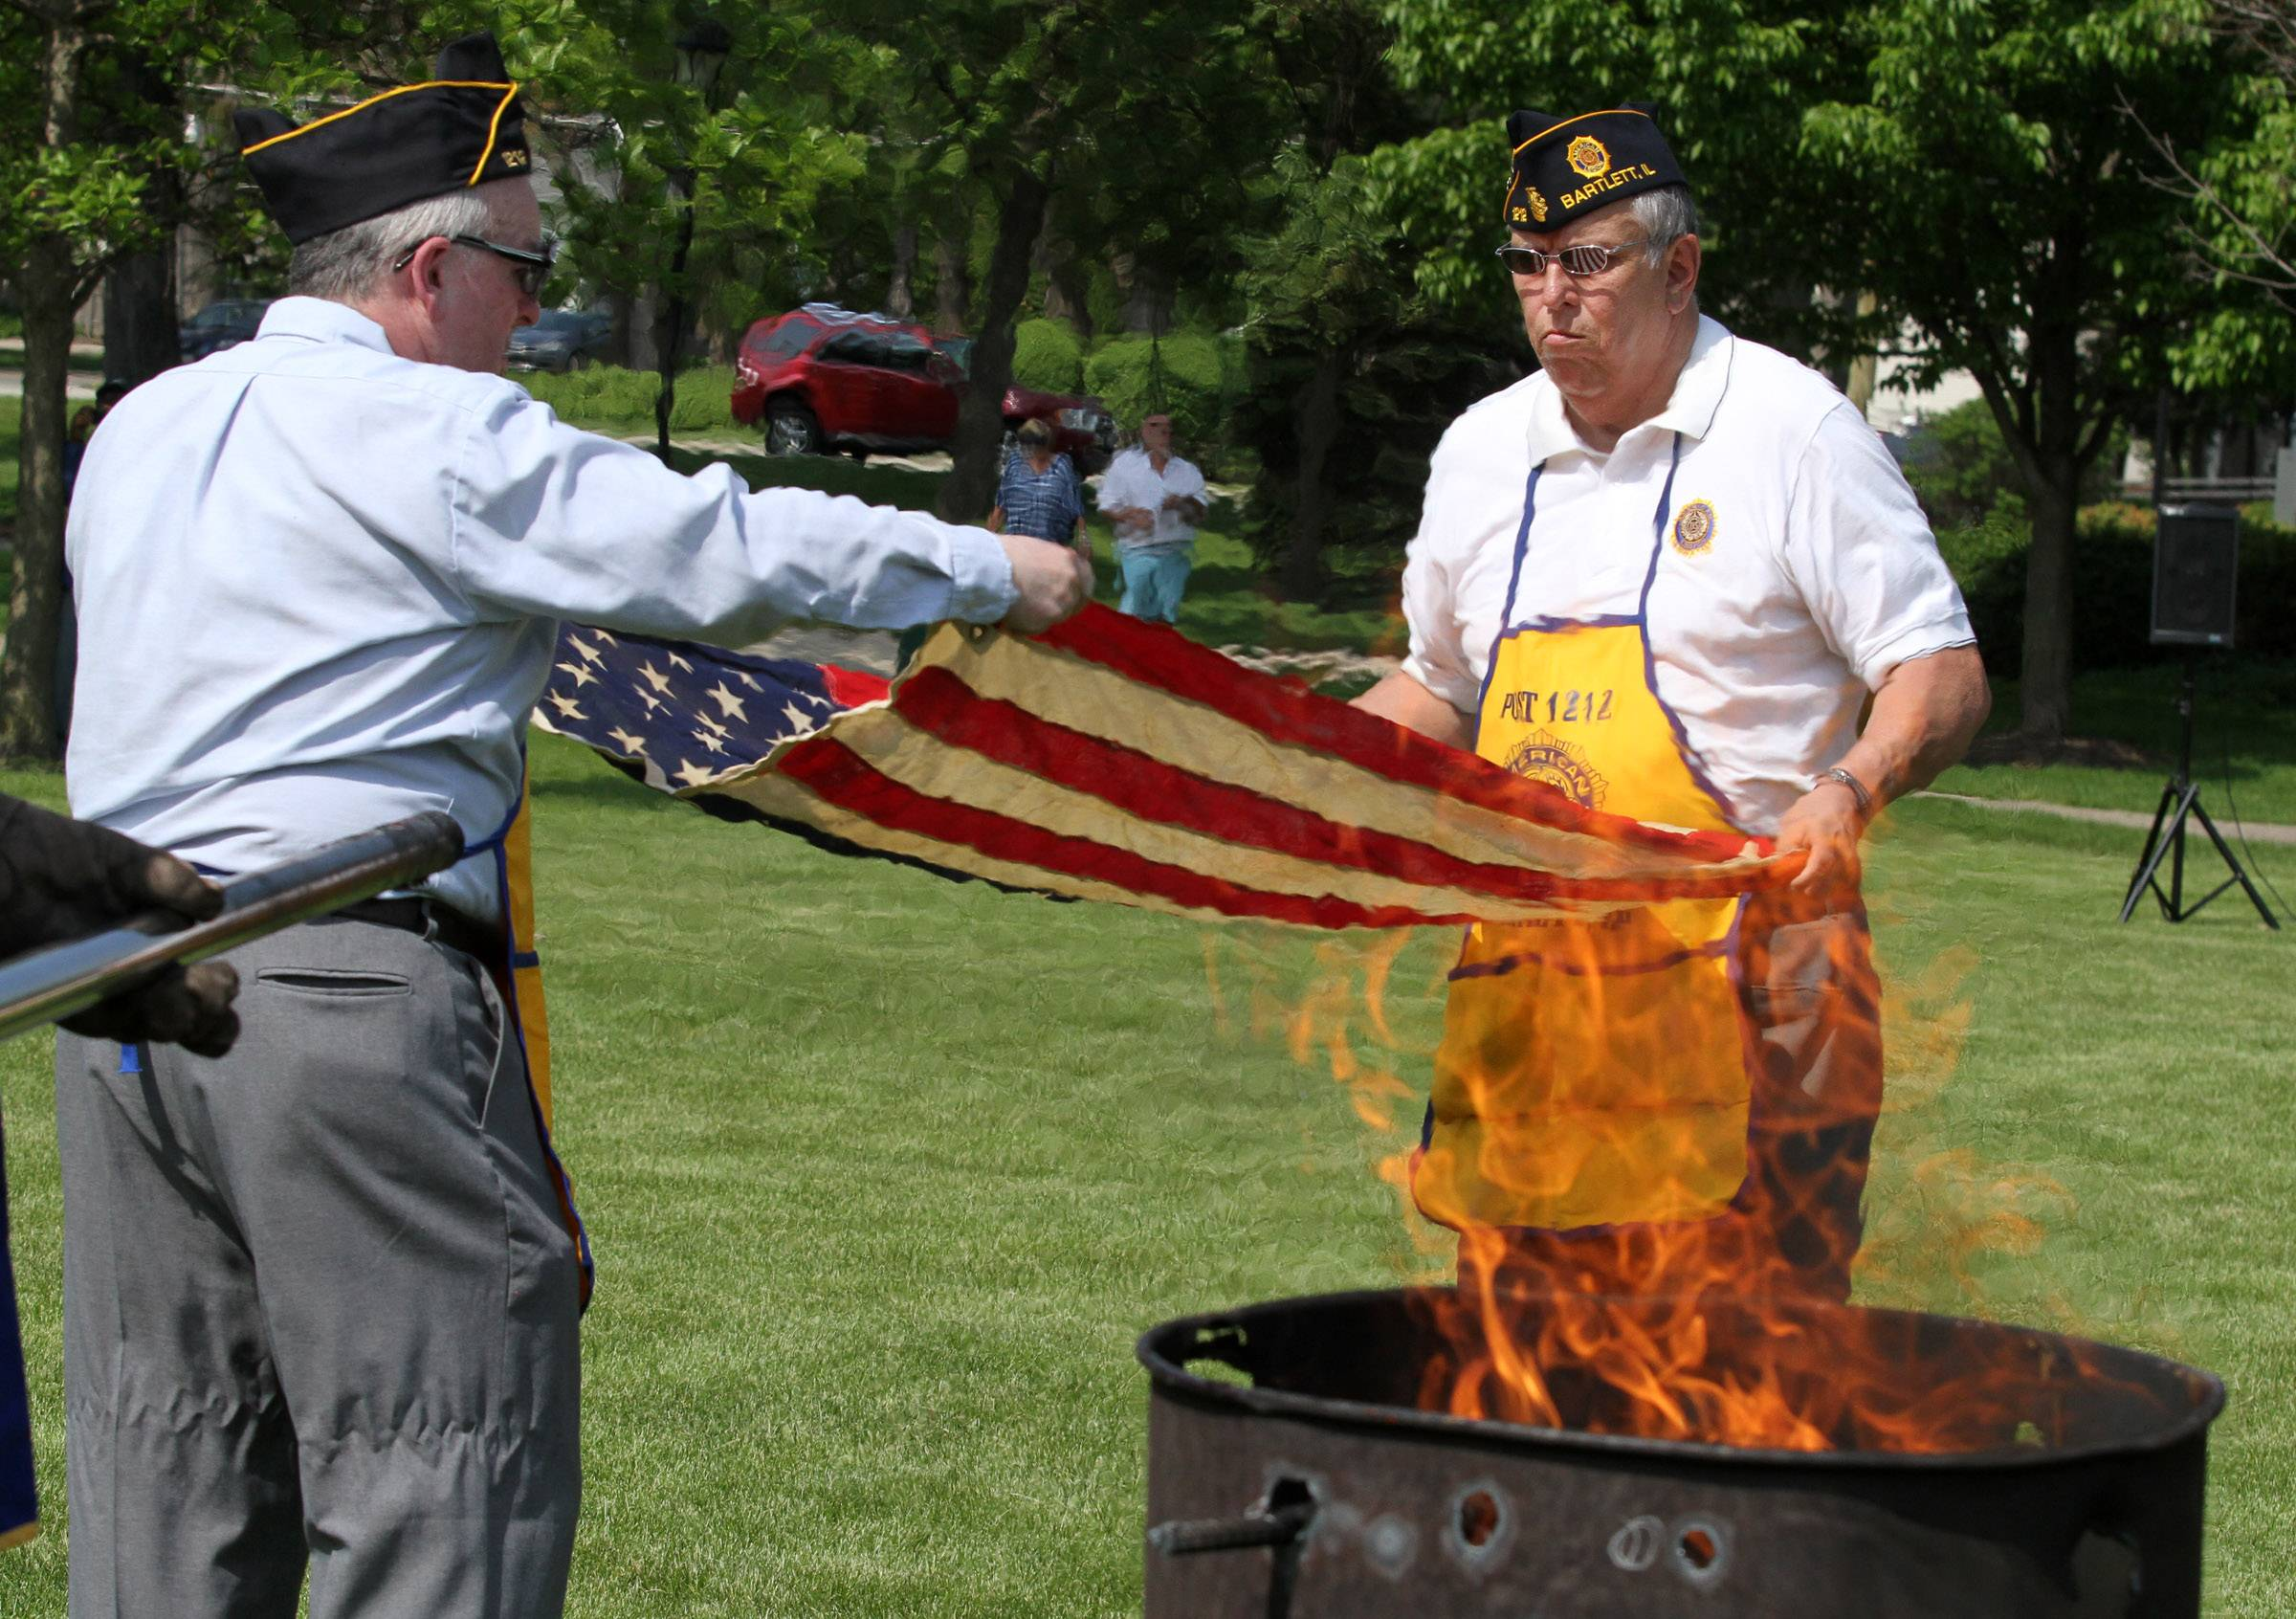 Paul Miller of Hanover Park and Bob Vaca of Bartlett, both with American Legion Post 1212, unfold a worn American flag to be burned during a flag retirement ceremony held by Bartlett VFW Post 11018 and American Legion Post 1212 at Bartlett Park on Memorial Day.